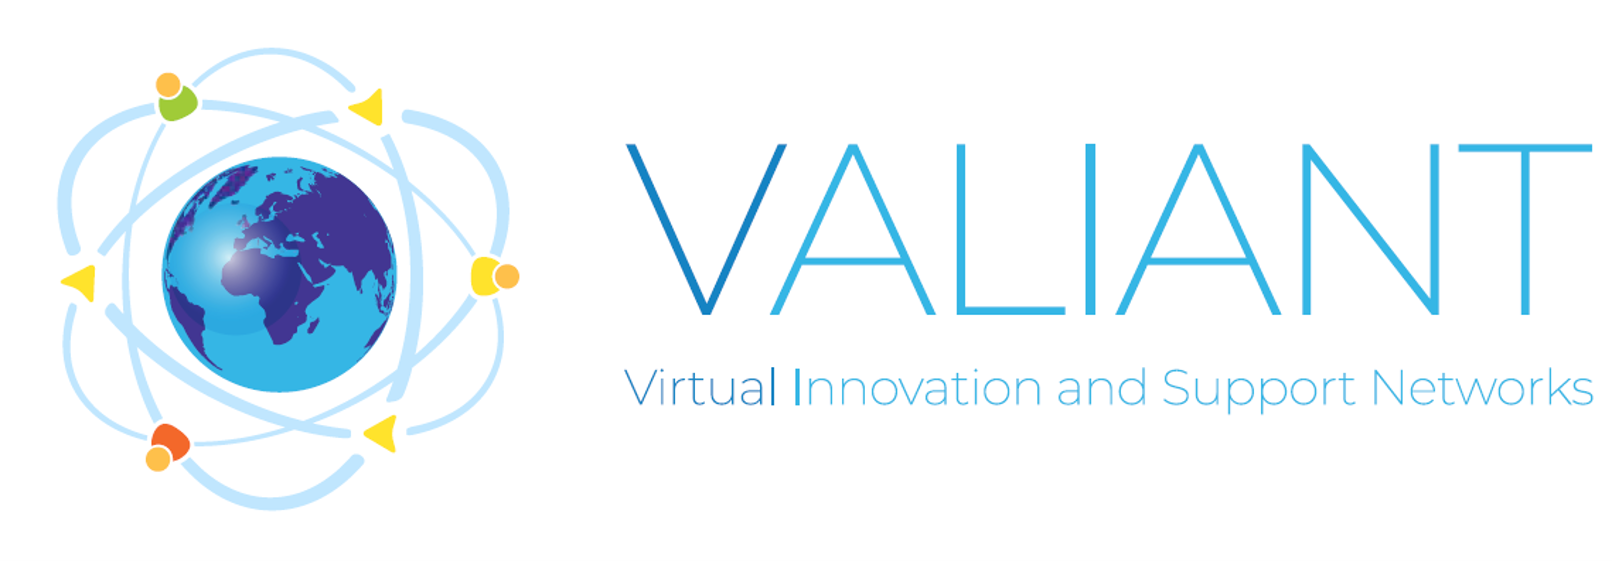 VALIANT Virtual Innovation and Support Networks